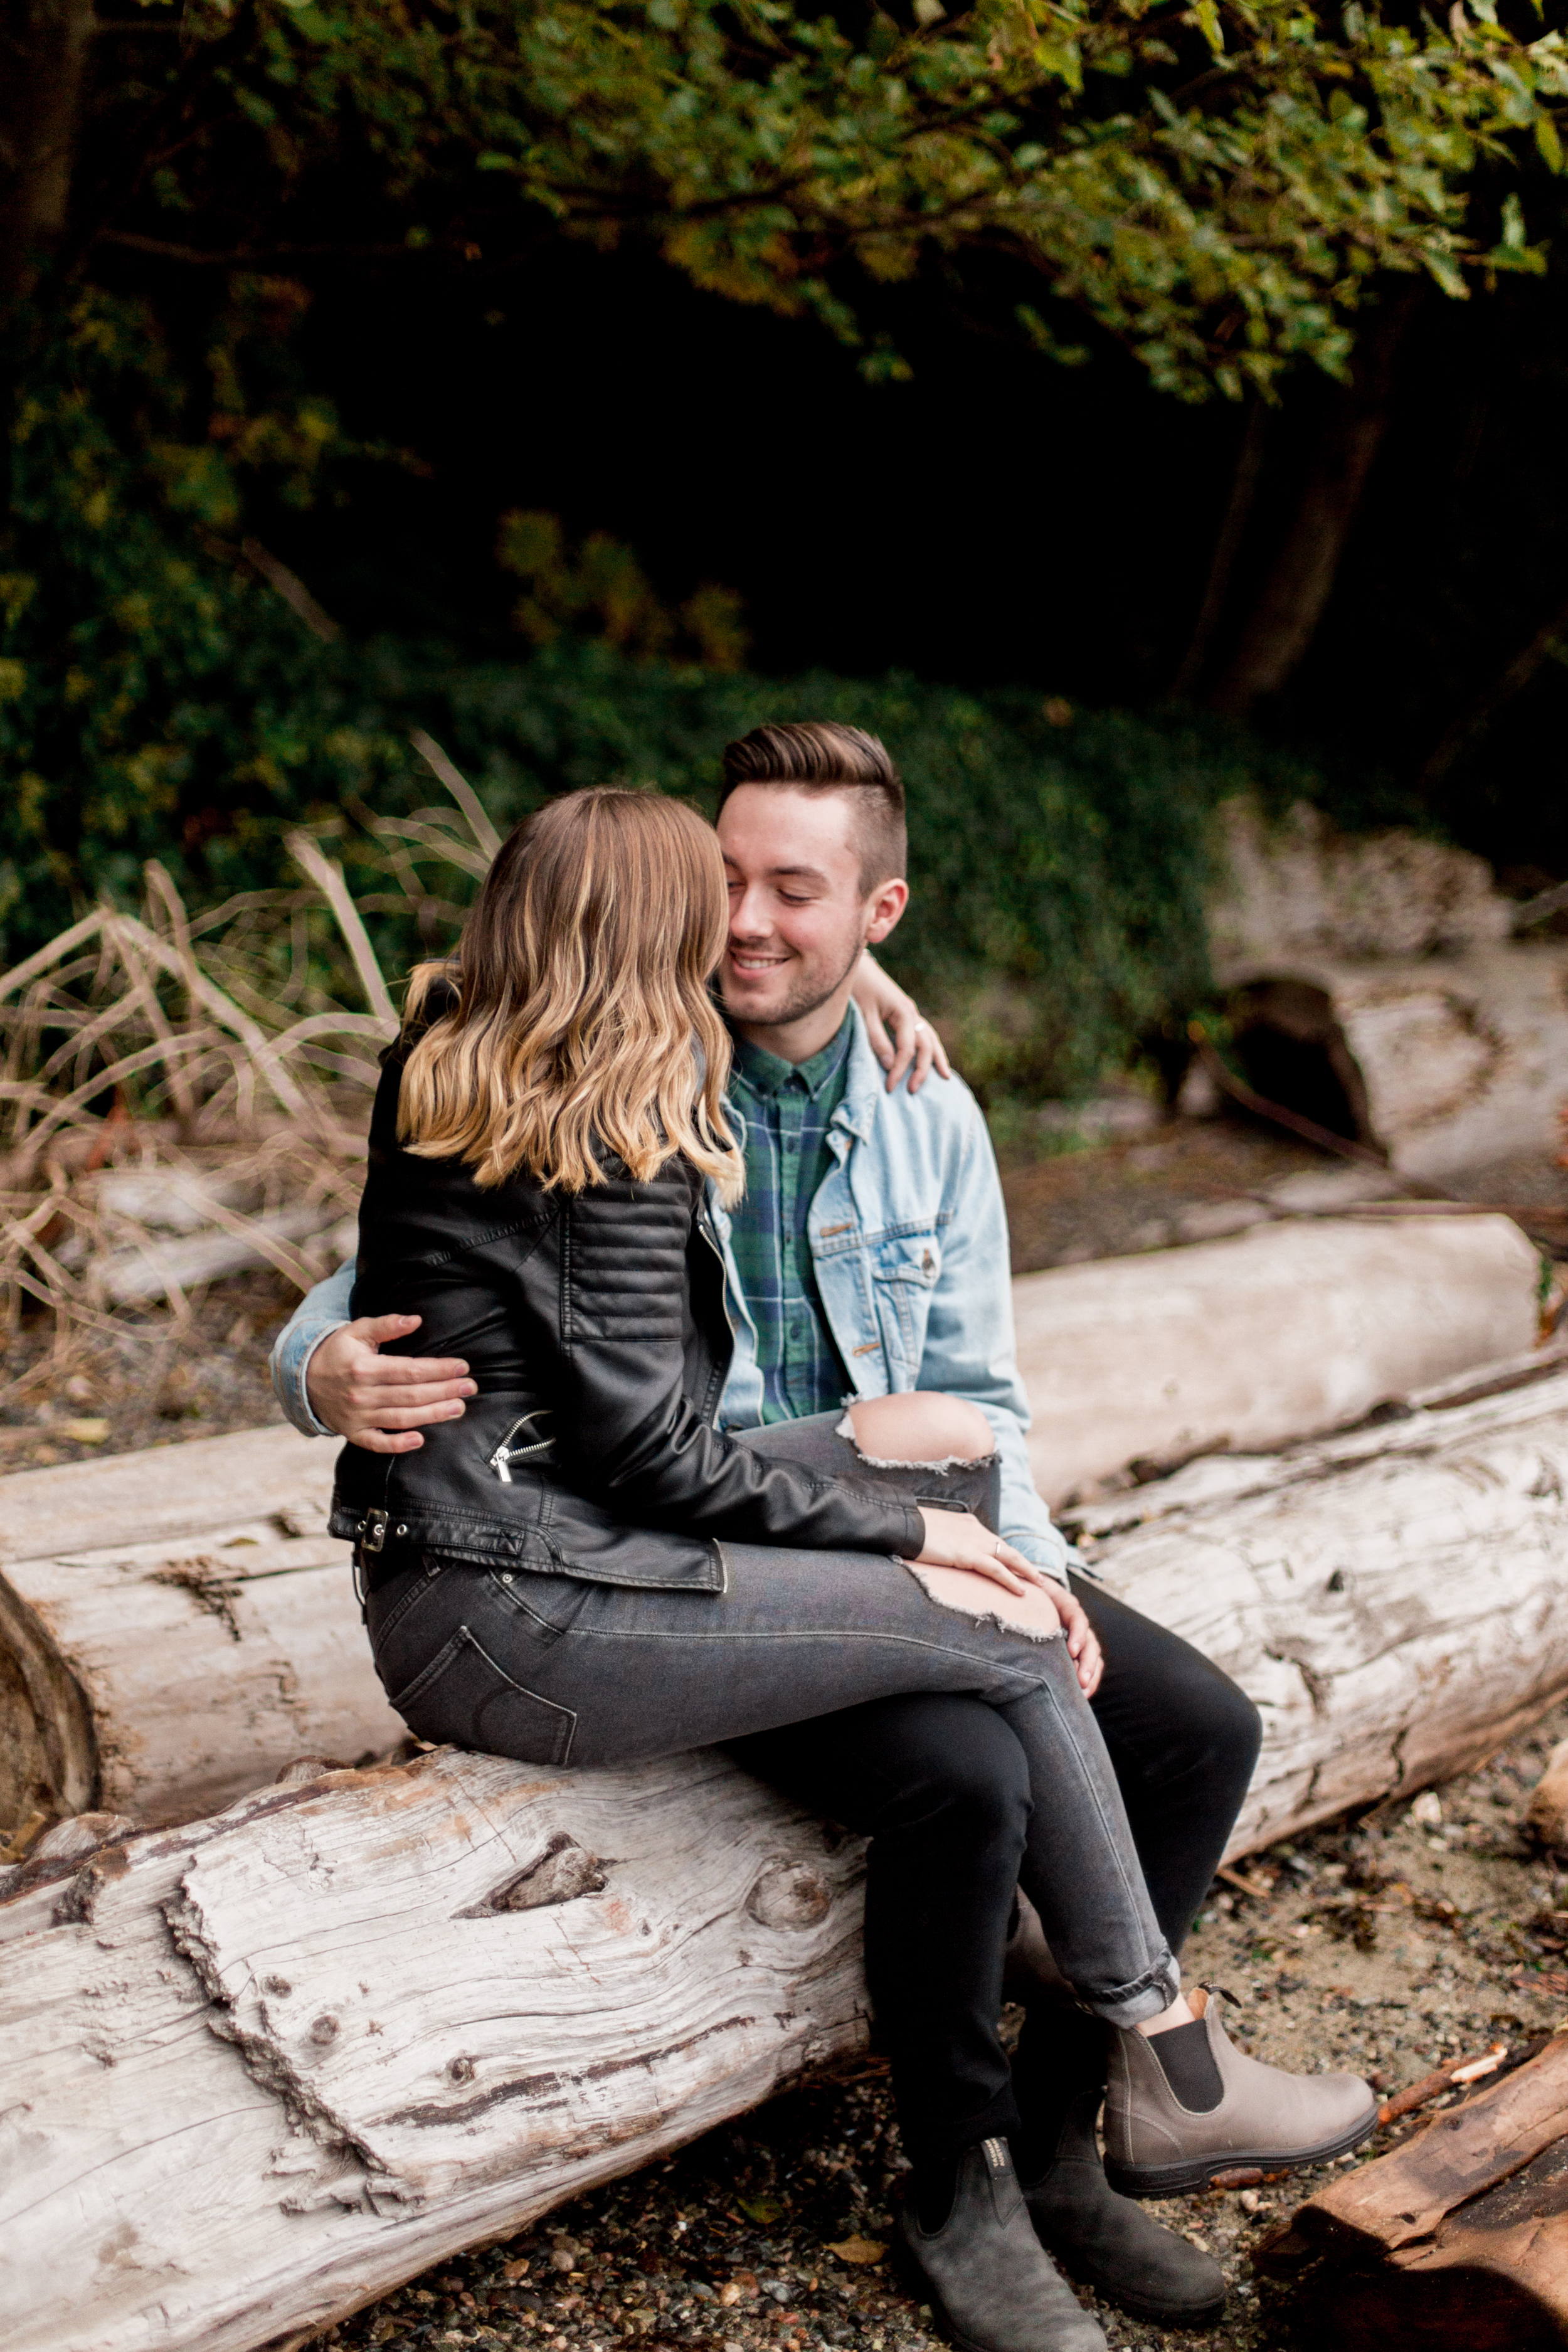 Vancouver Engagement Session - Vancouver Wedding Photographer - Whytecliff Park Engagement Photos - Whytecliff Park Wedding pics - BC Wedding Photographer - Winnipeg Wedding Photographer - Destination Film Wedding Photographer - Keila Marie Photography